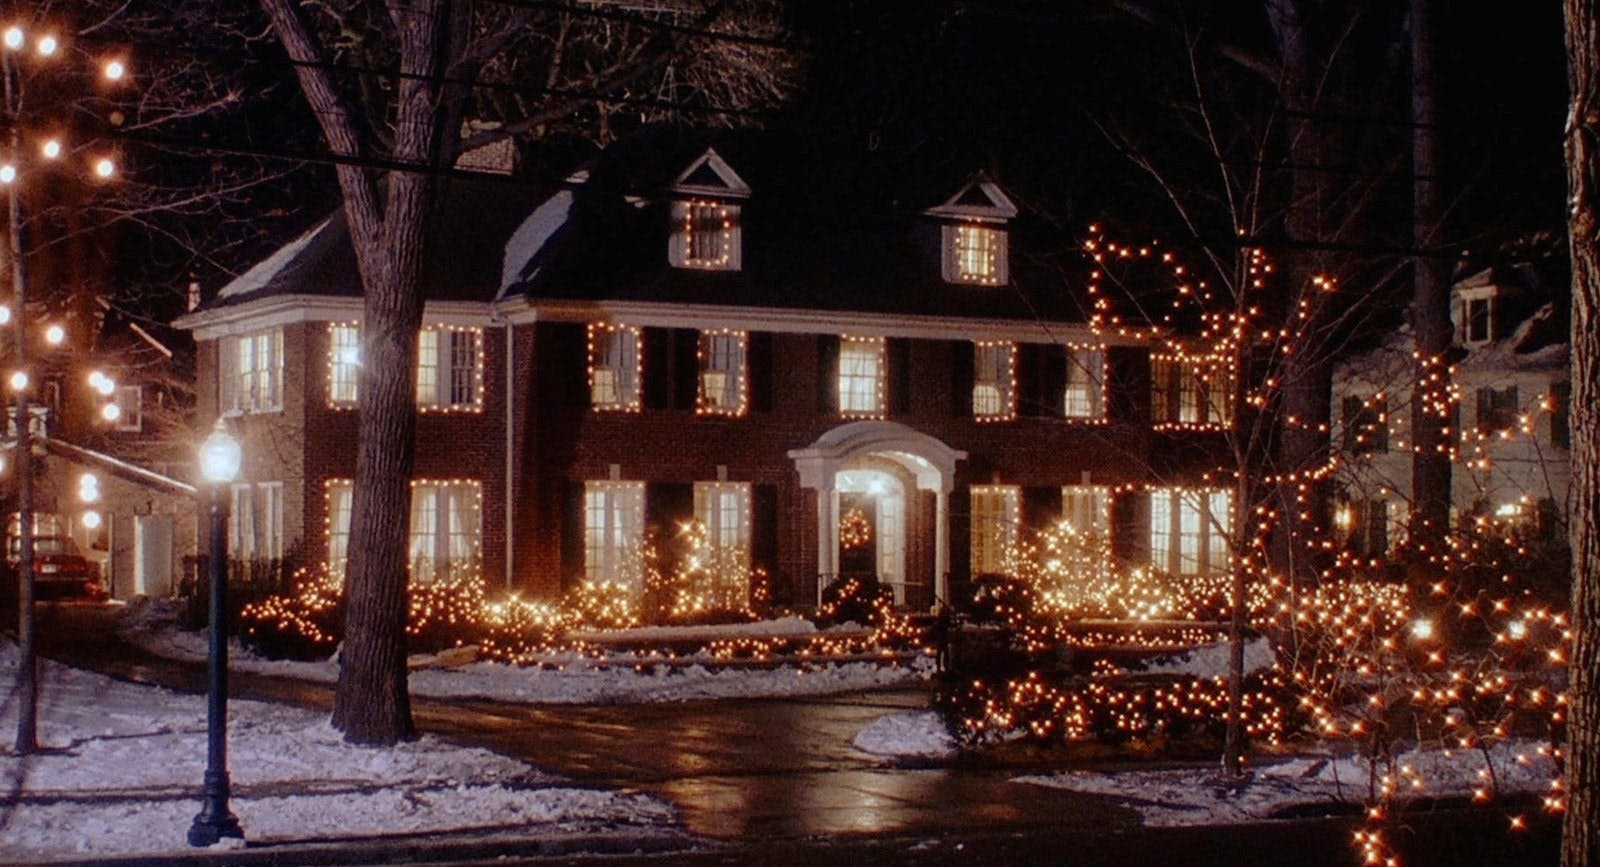 House in Home Alone 1 in Illinois